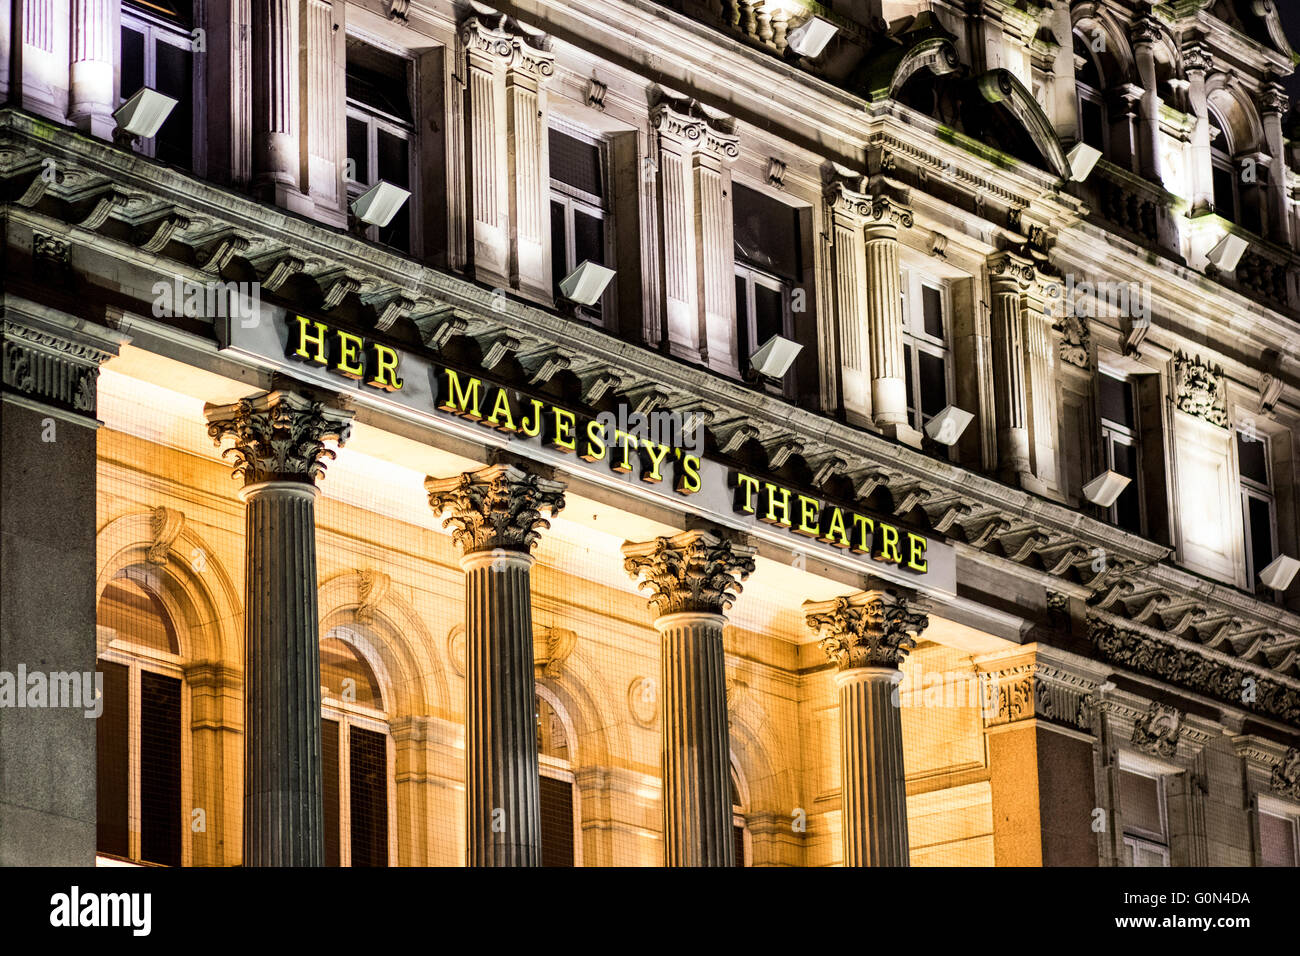 Her Majesty's Theatre London external GV sign - Stock Image